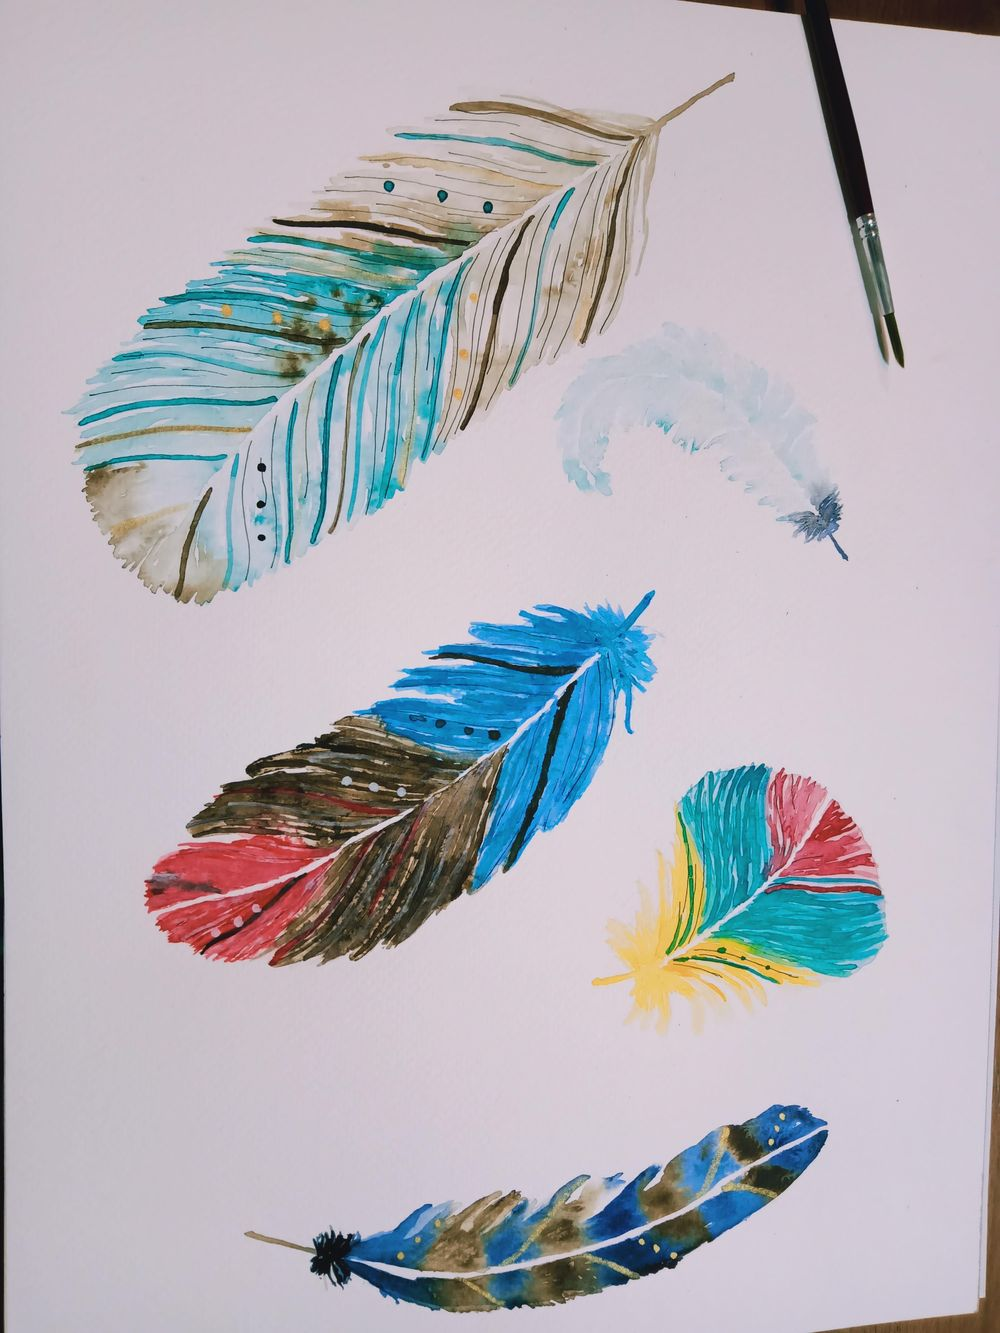 Bohemian style - image 1 - student project